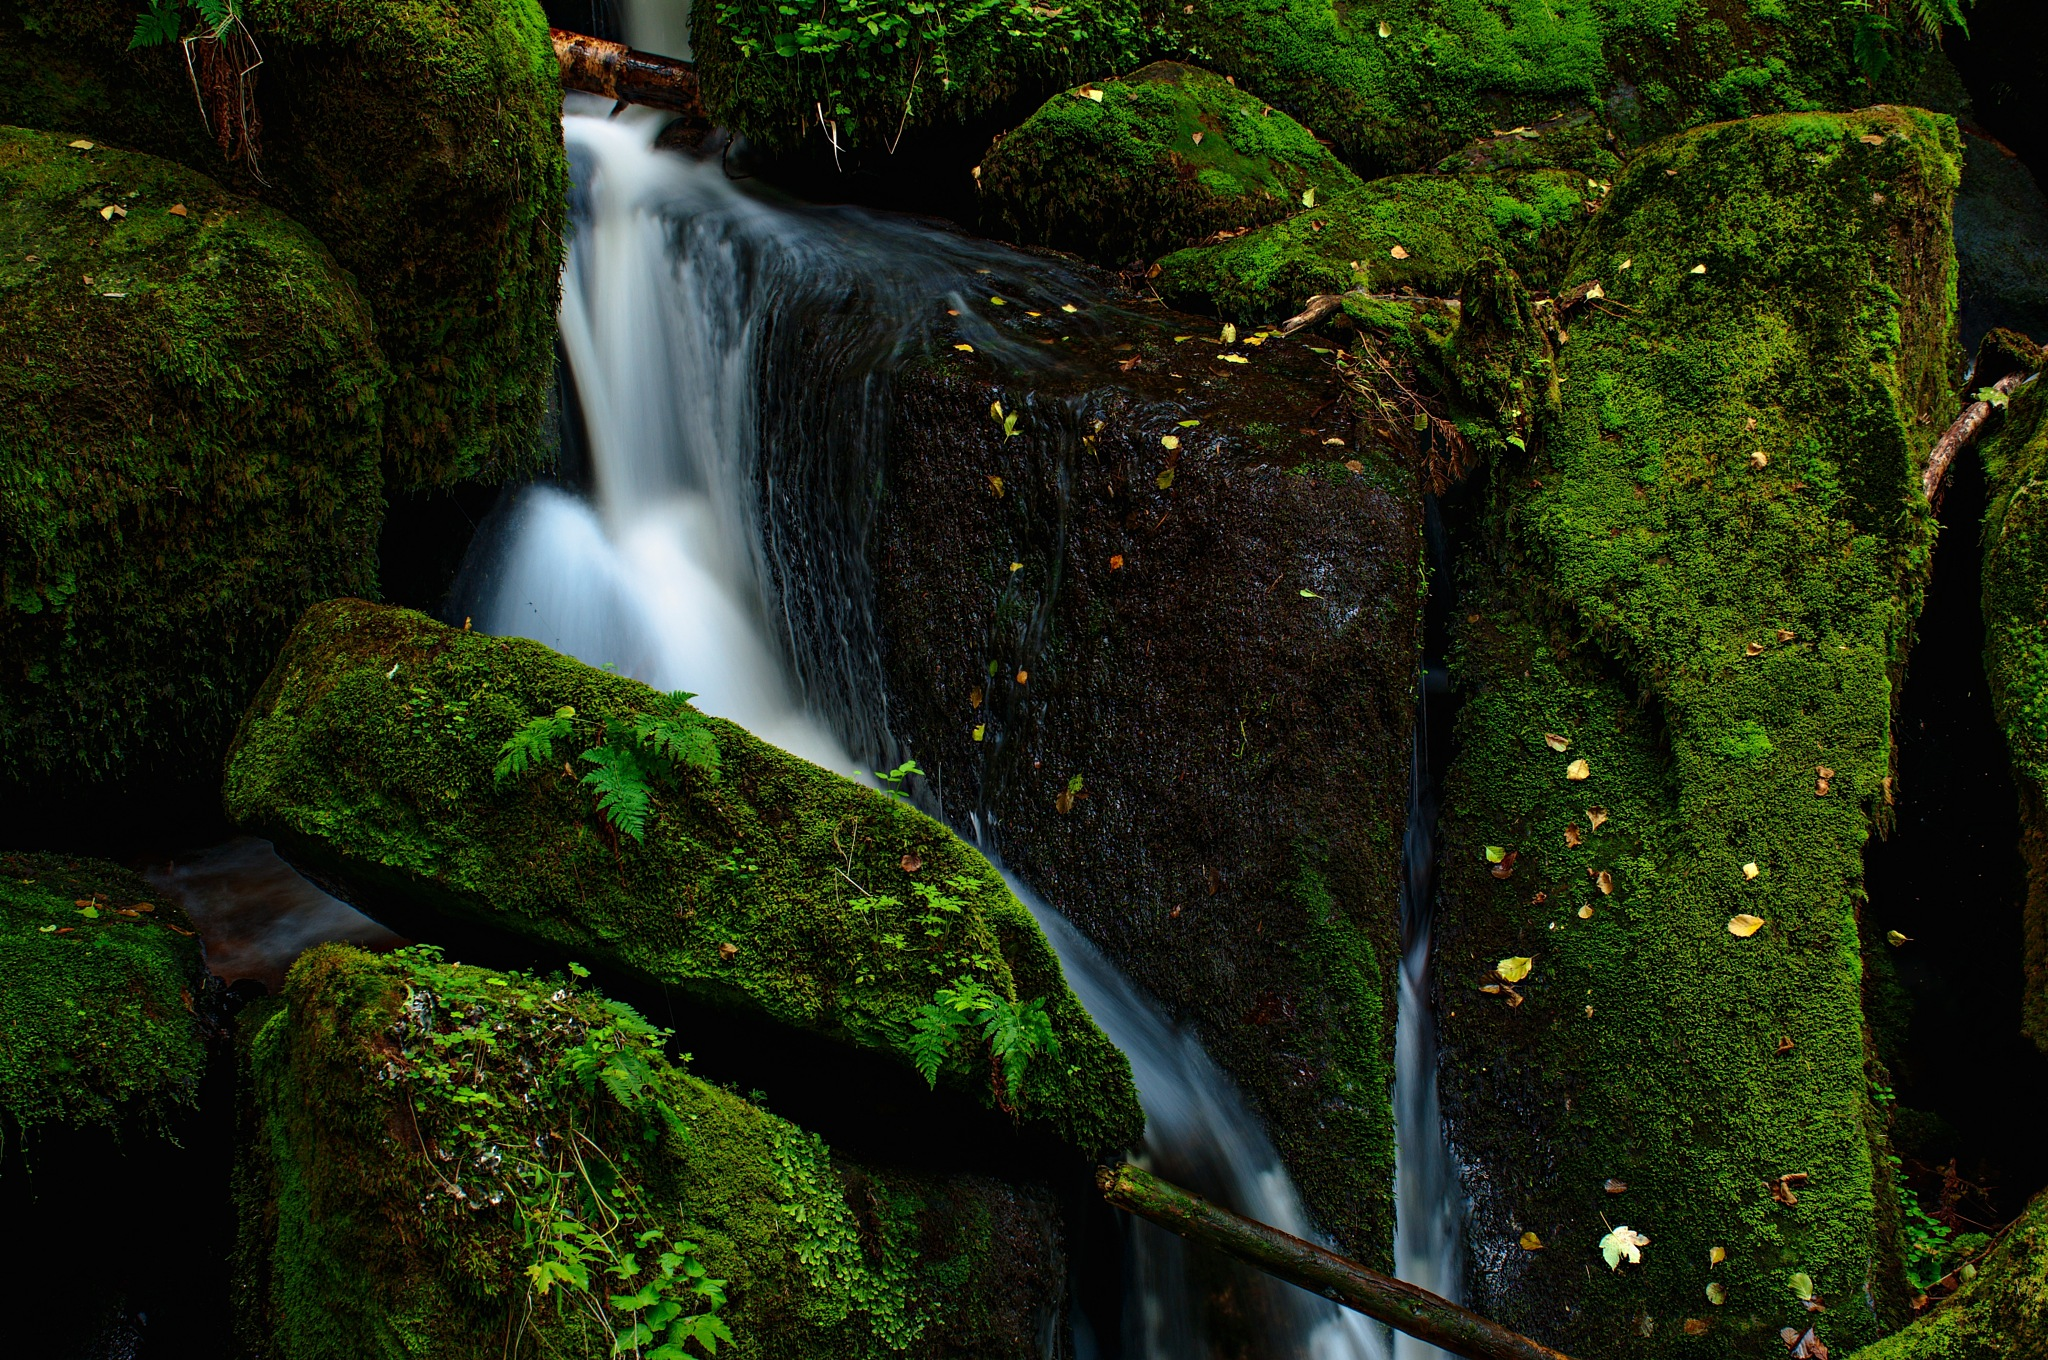 Wolfgang's waterfalls IV. by CARRADORE